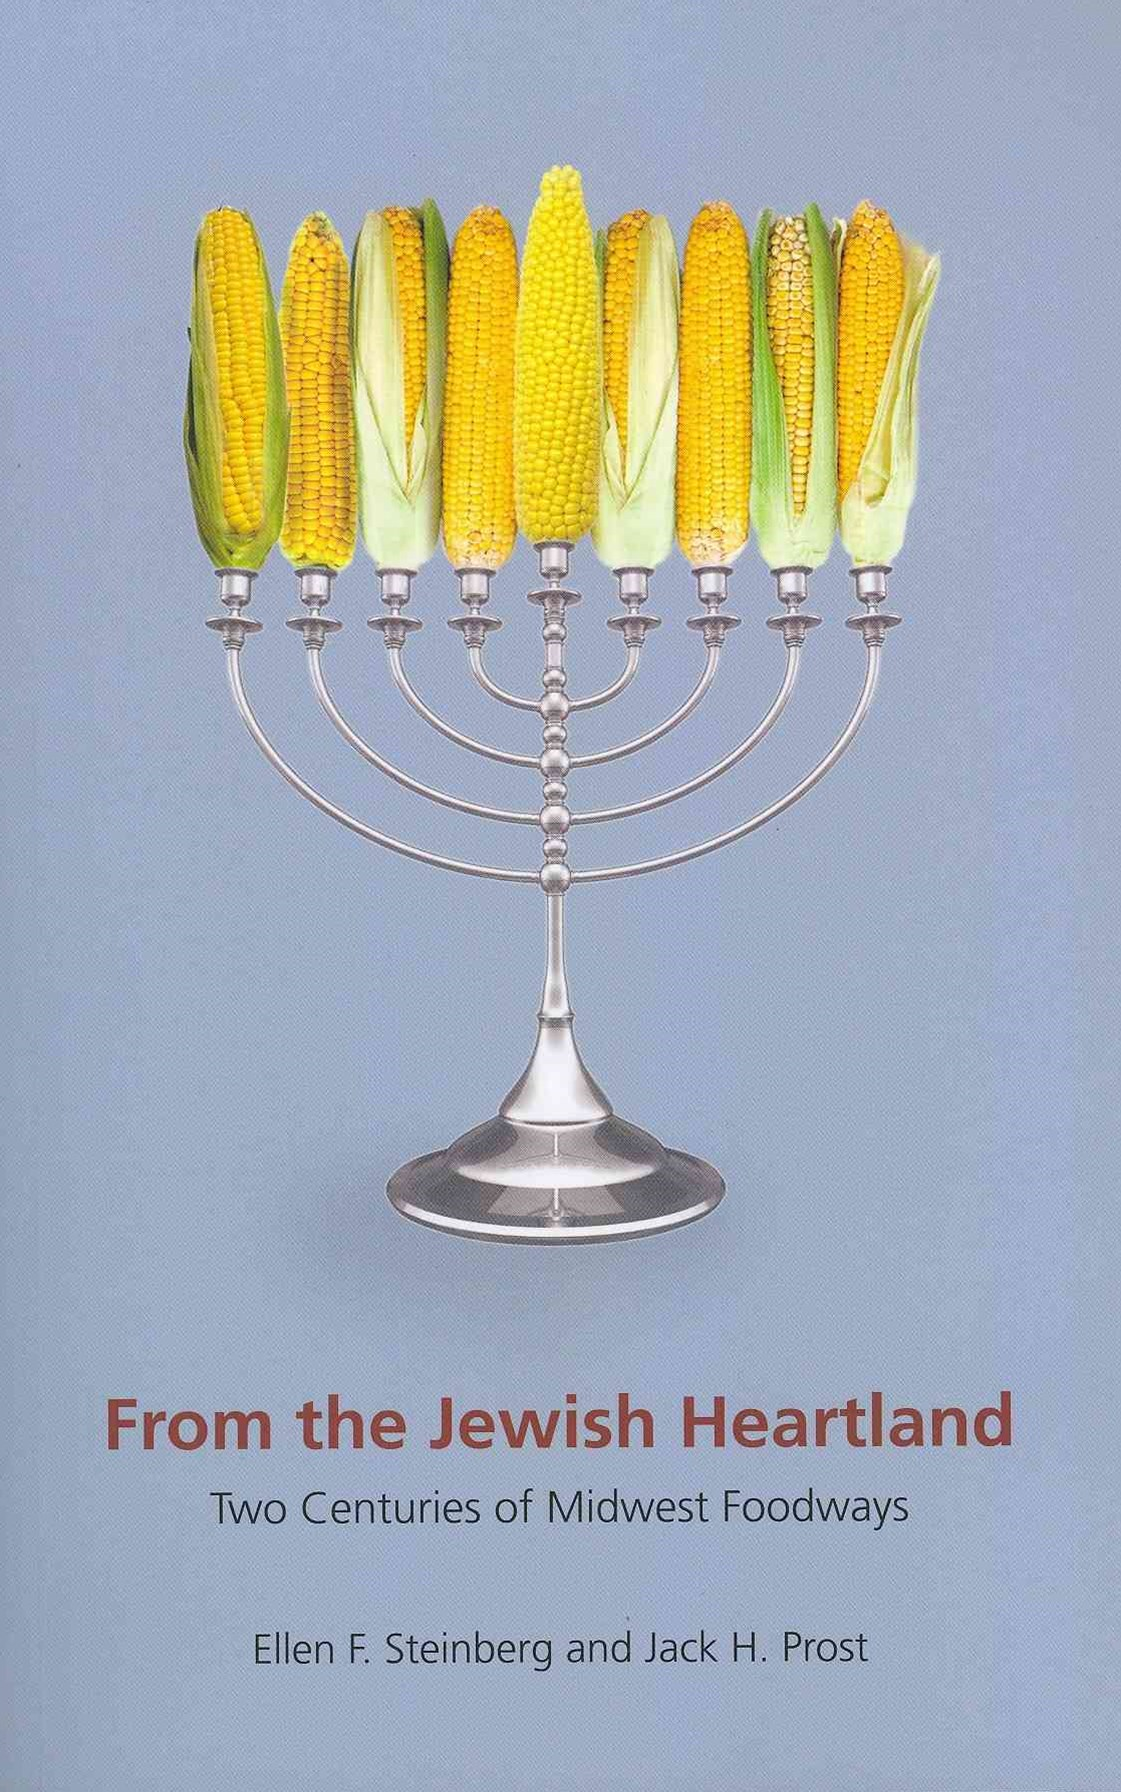 From the Jewish Heartland